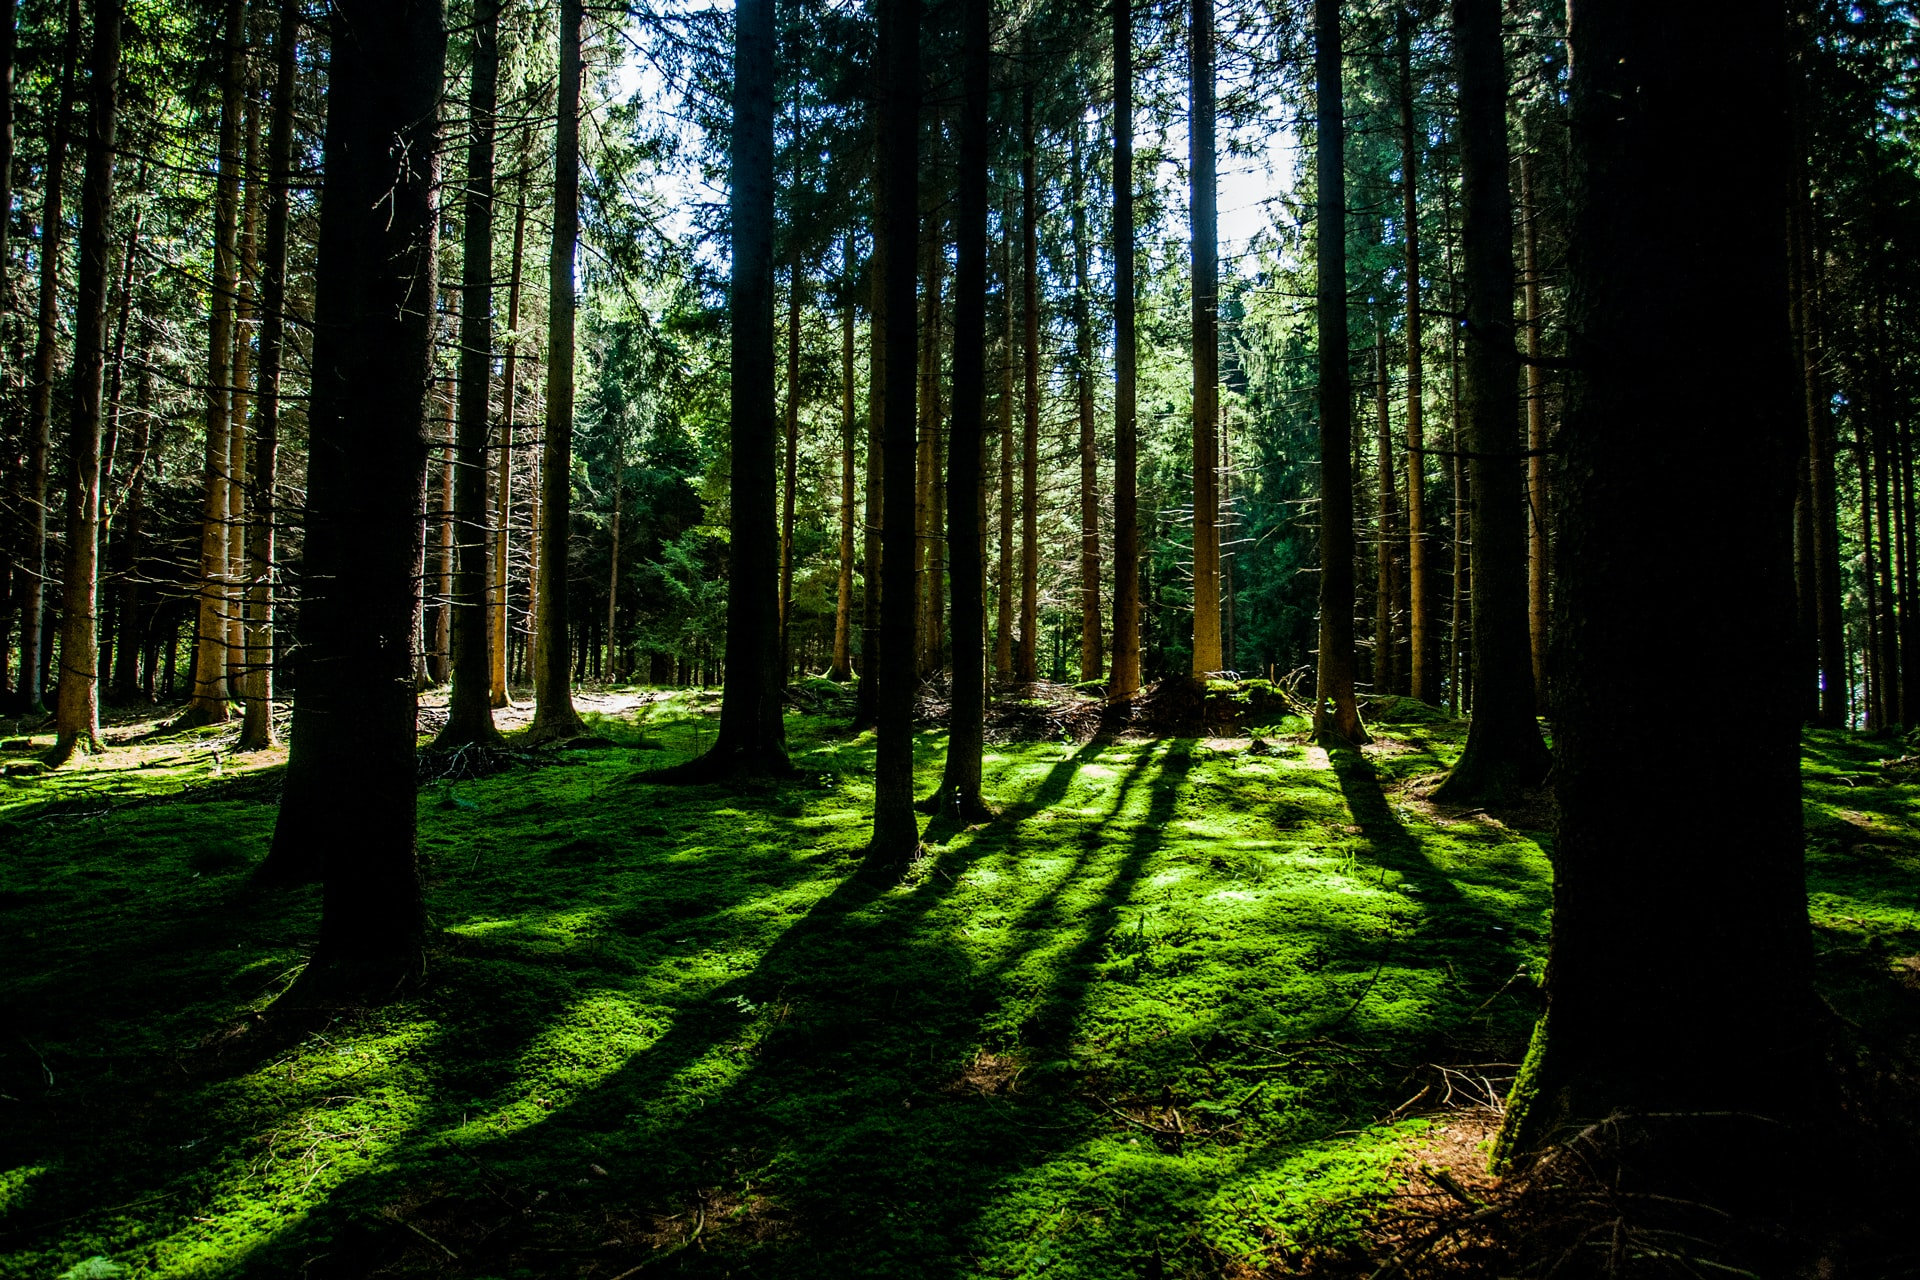 Tall trees casting long shadows on the mossy green ground cover